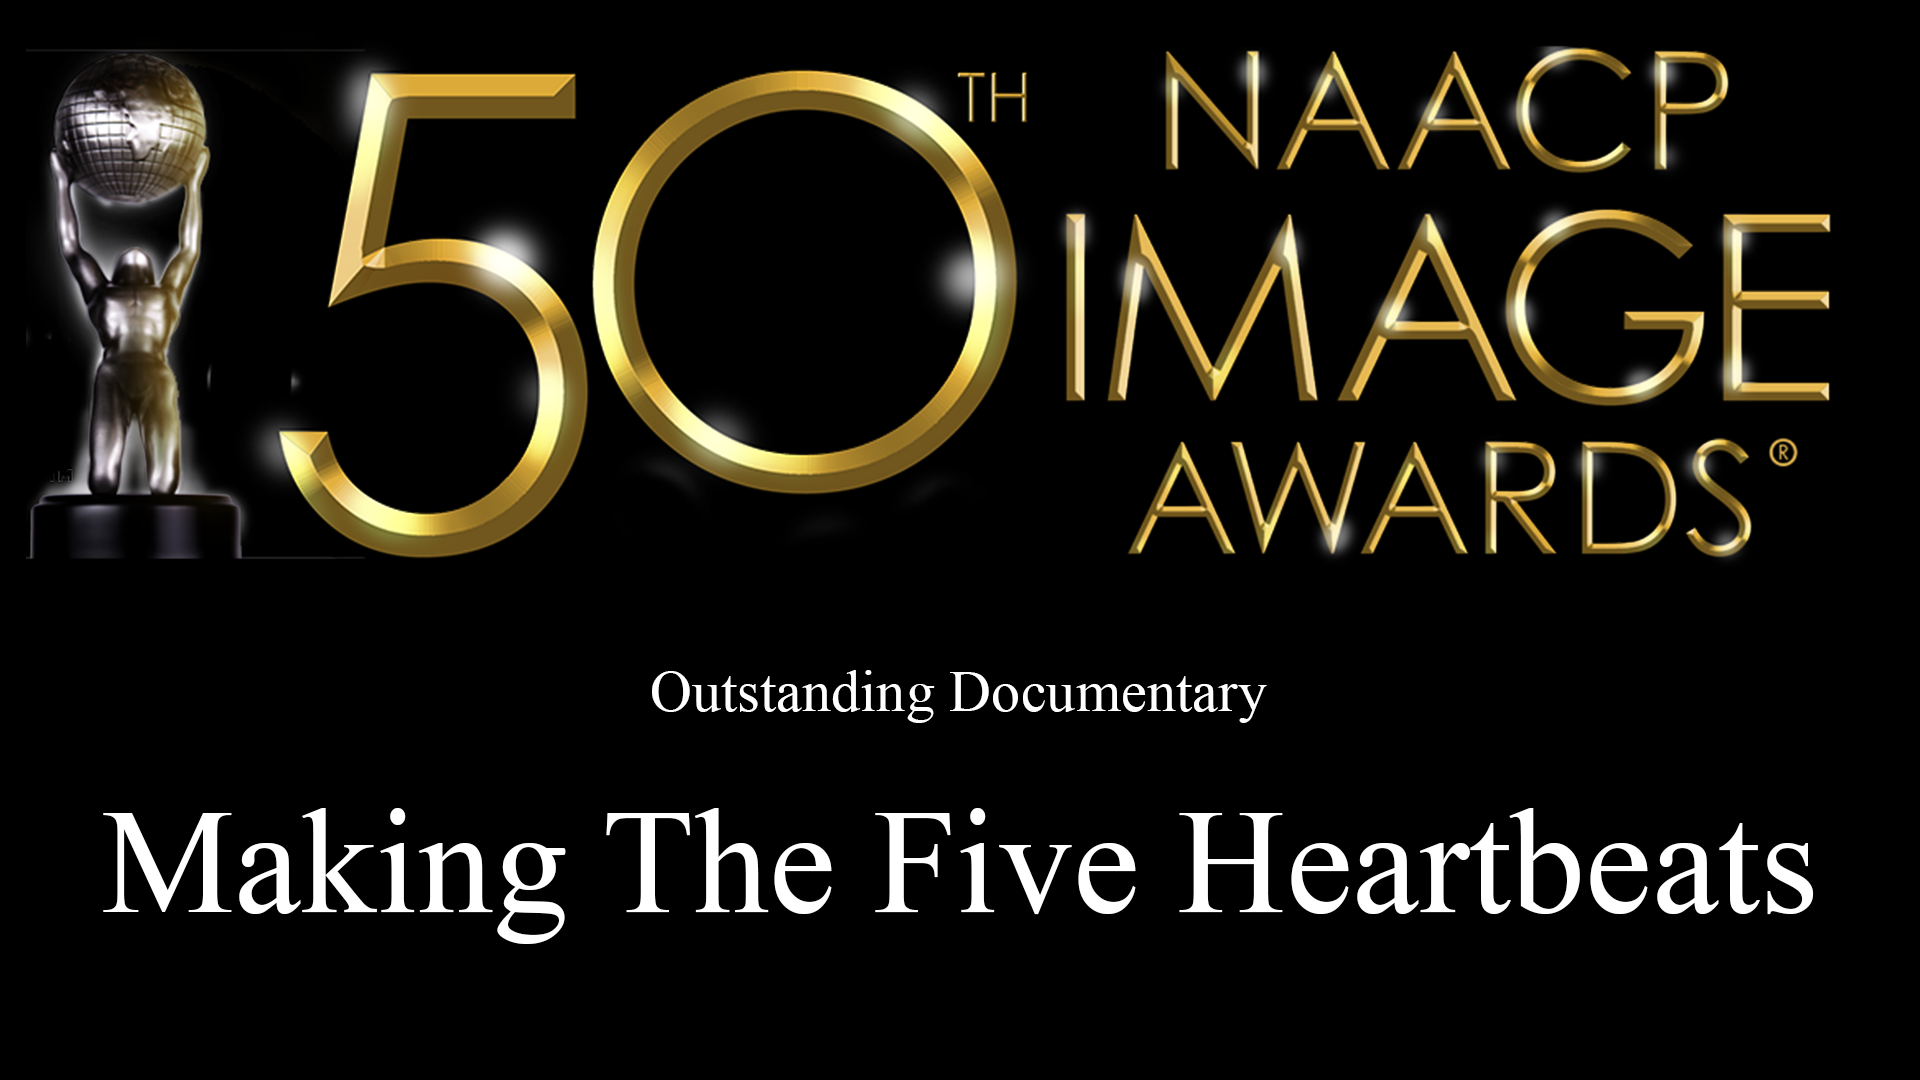 50th naacp image award nom graphic.png